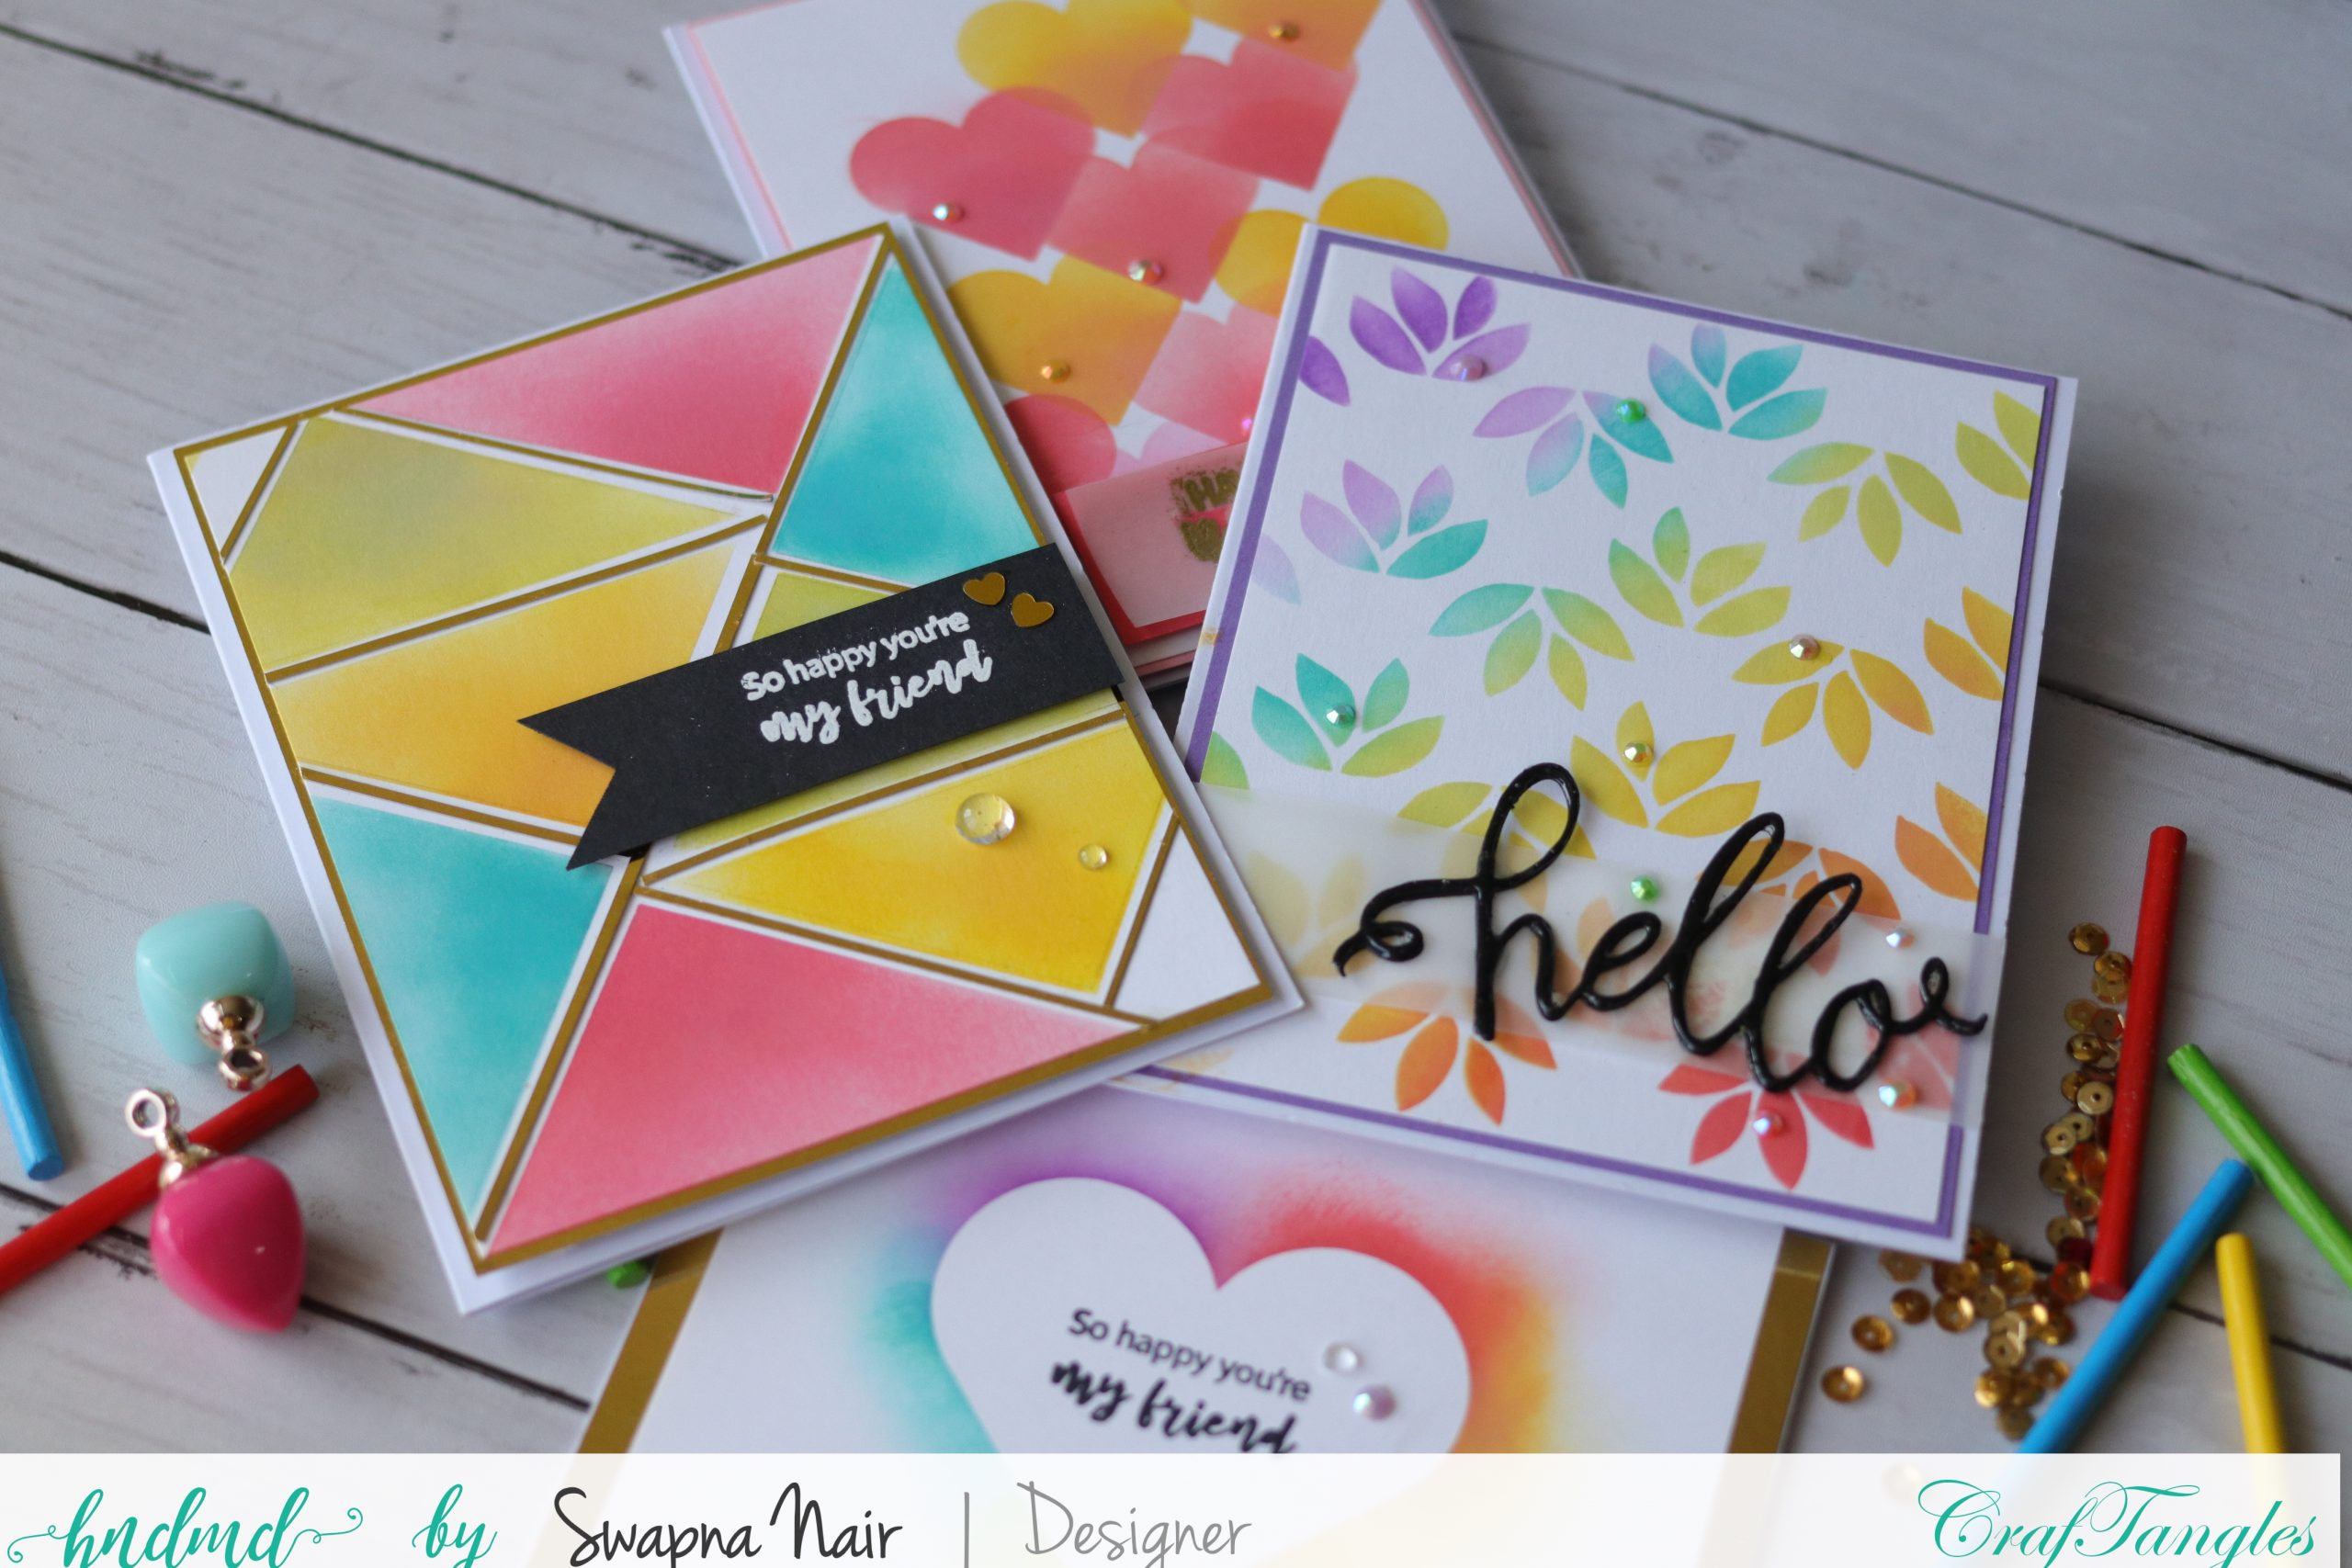 Cardmaking Ideas - 4 Easy Cards using Stencils 4